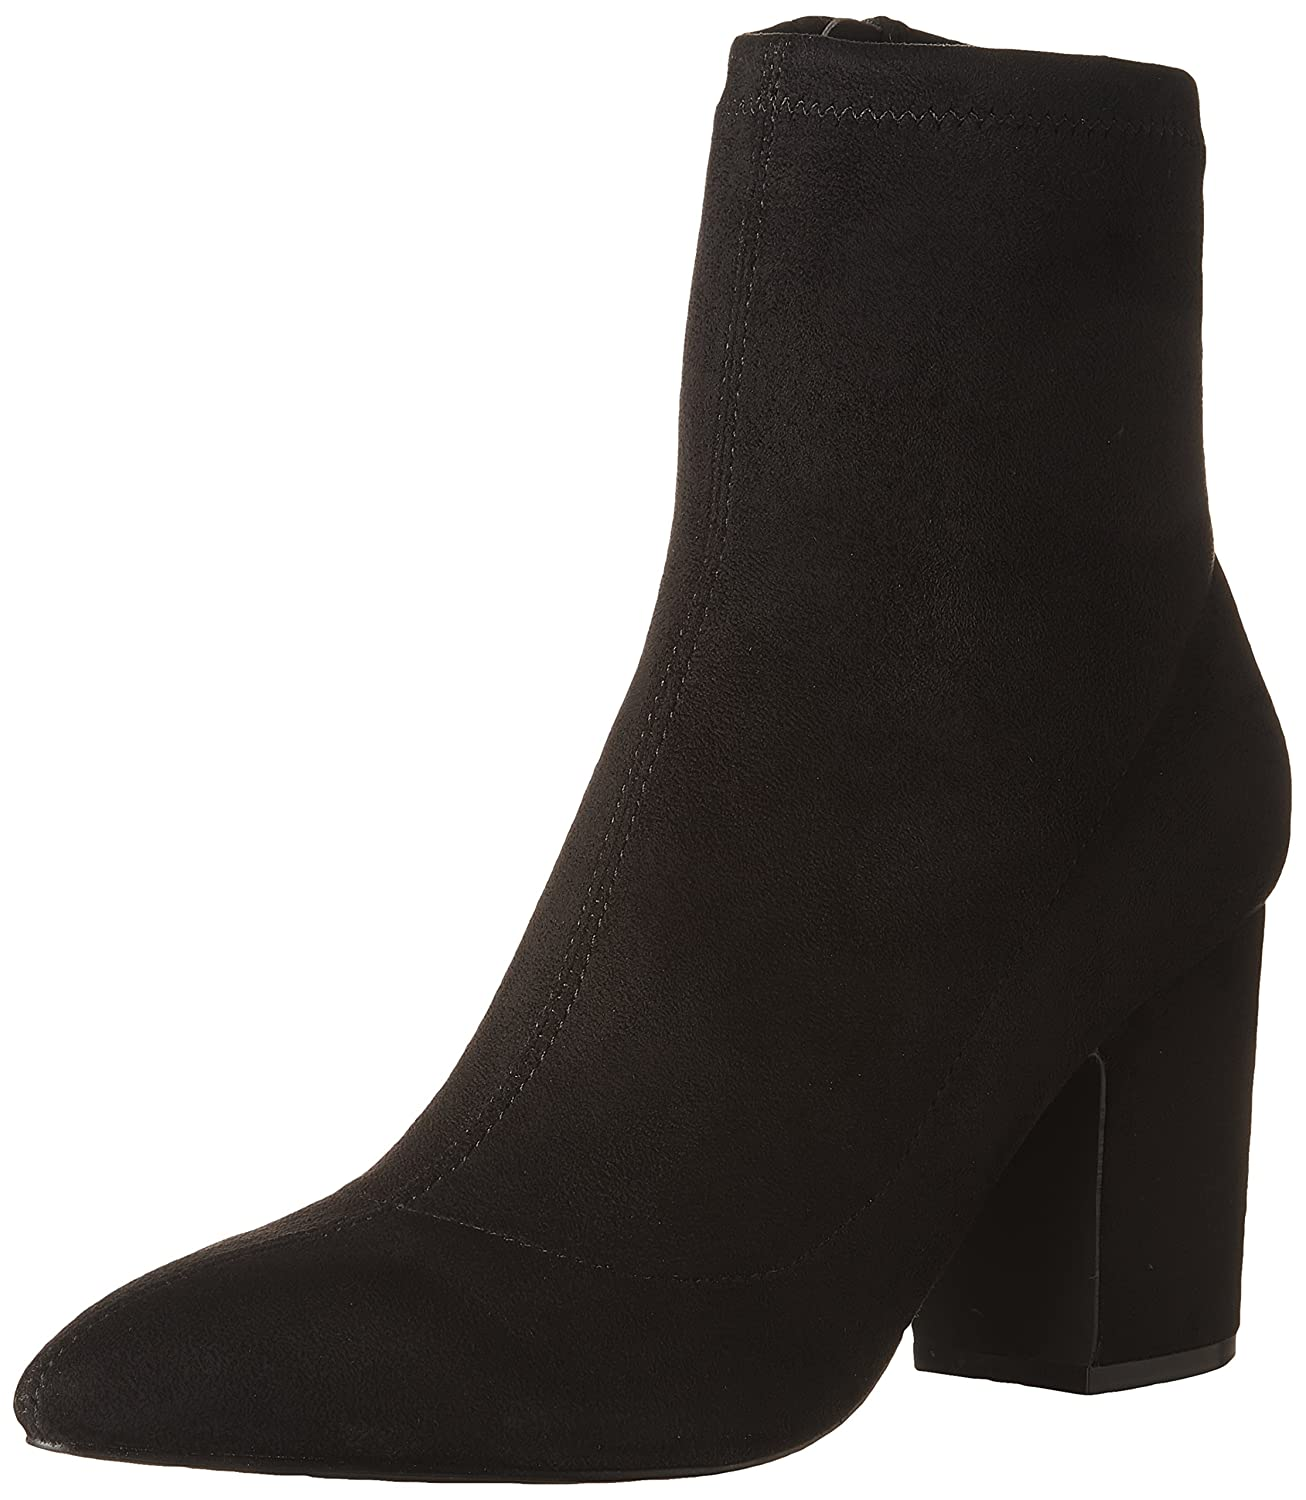 Steve Madden Women's Lollypop Fashion Boots